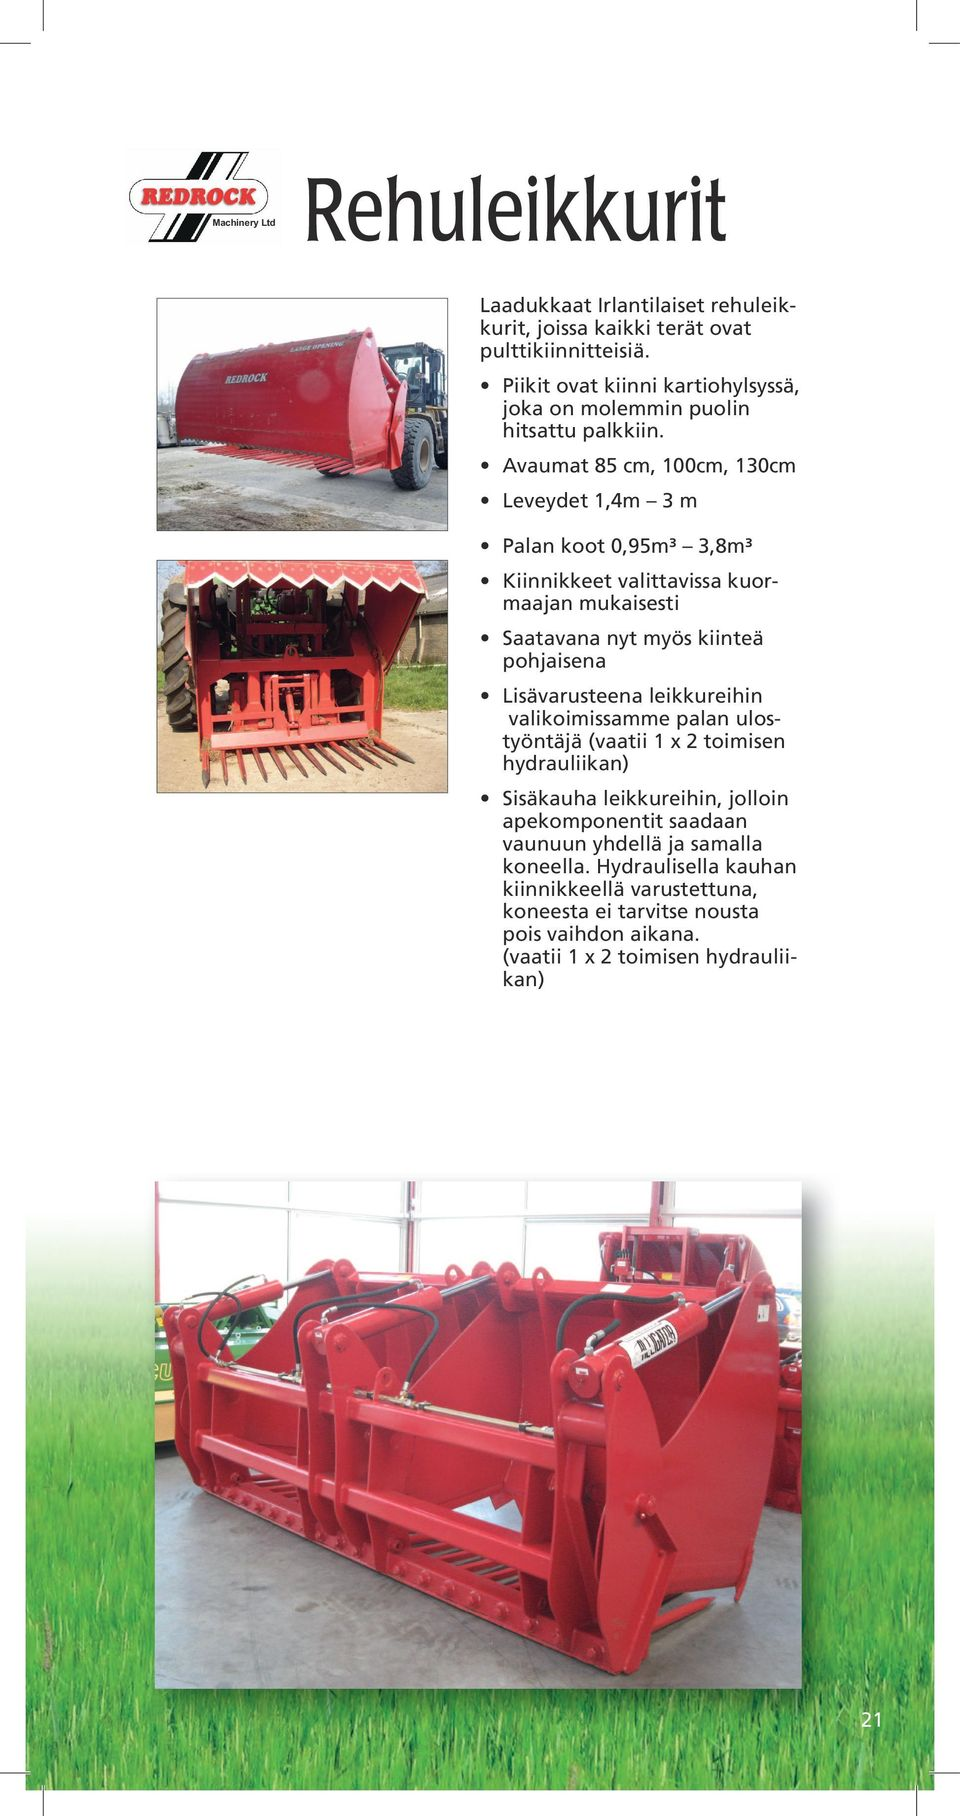 N.Ireland, Bt60 2BL 8 37552390 www.redrockmachinery.